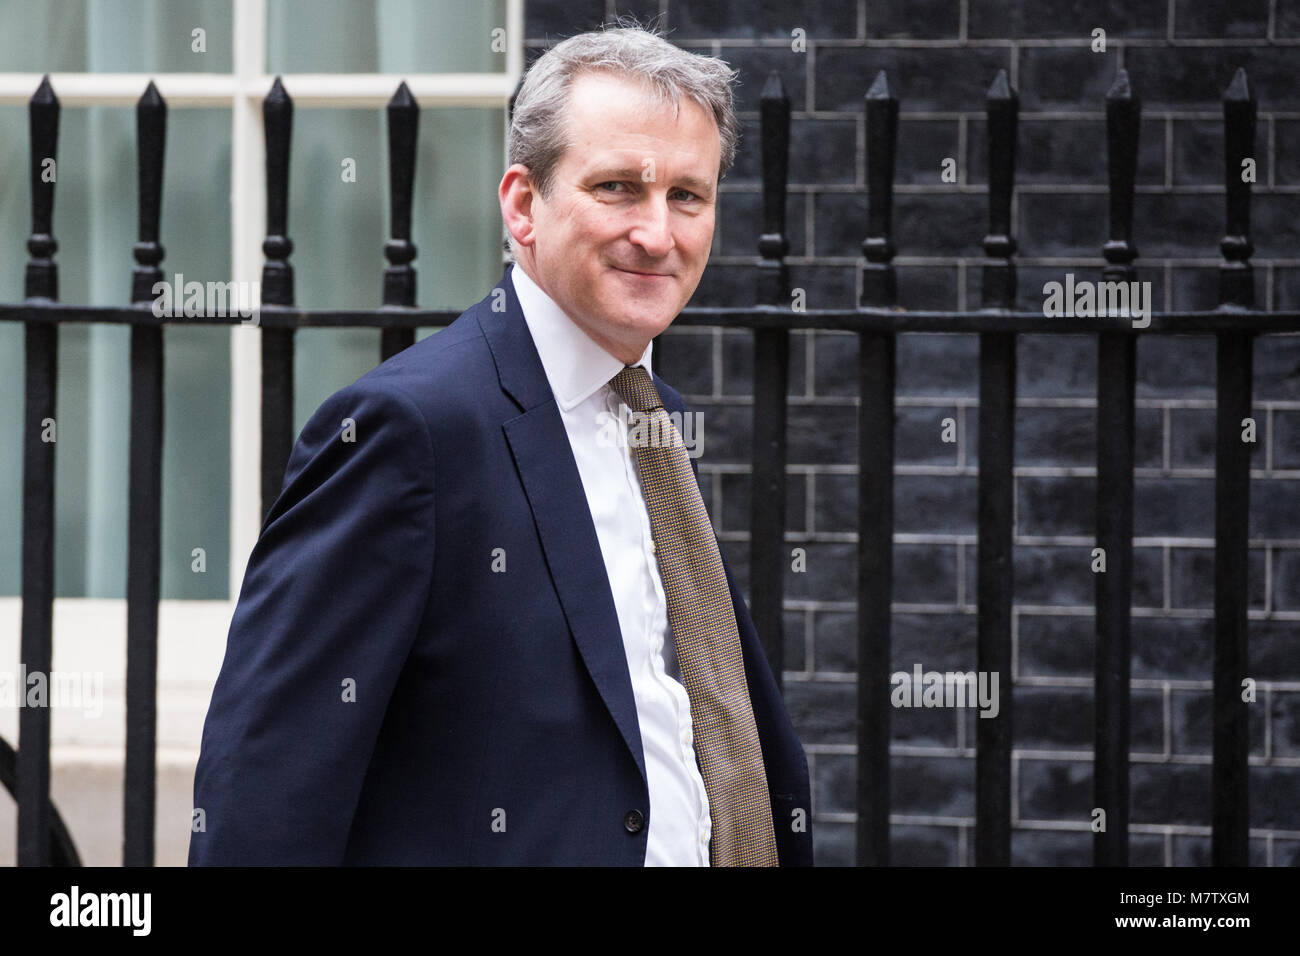 London, UK. 13th March, 2018. Damian Hinds MP, Secretary of State for Education, arrives at 10 Downing Street for - Stock Image